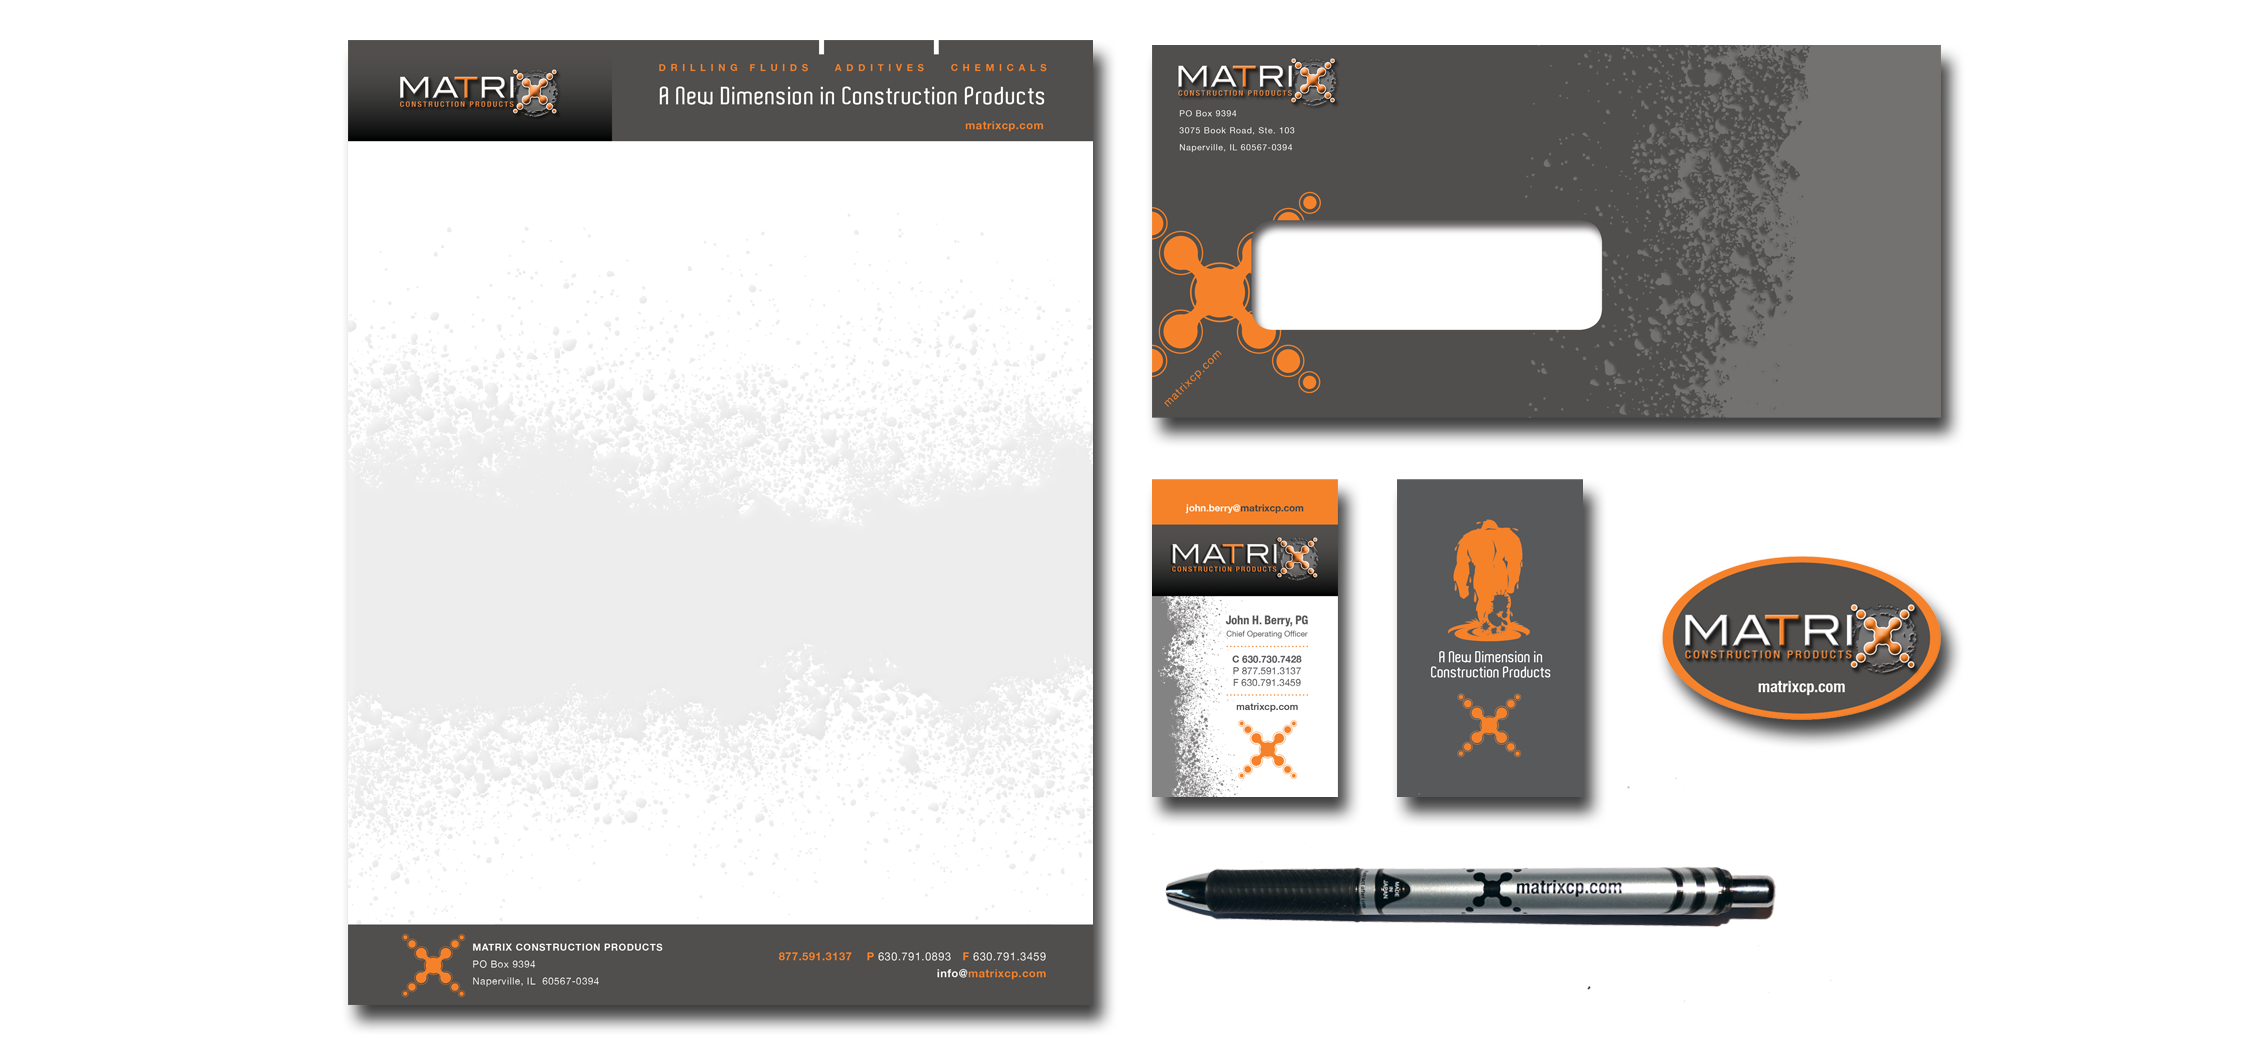 Stationary   Letterhead, envelope, extra thick business cards with orange painted edge and logo imprint pen.